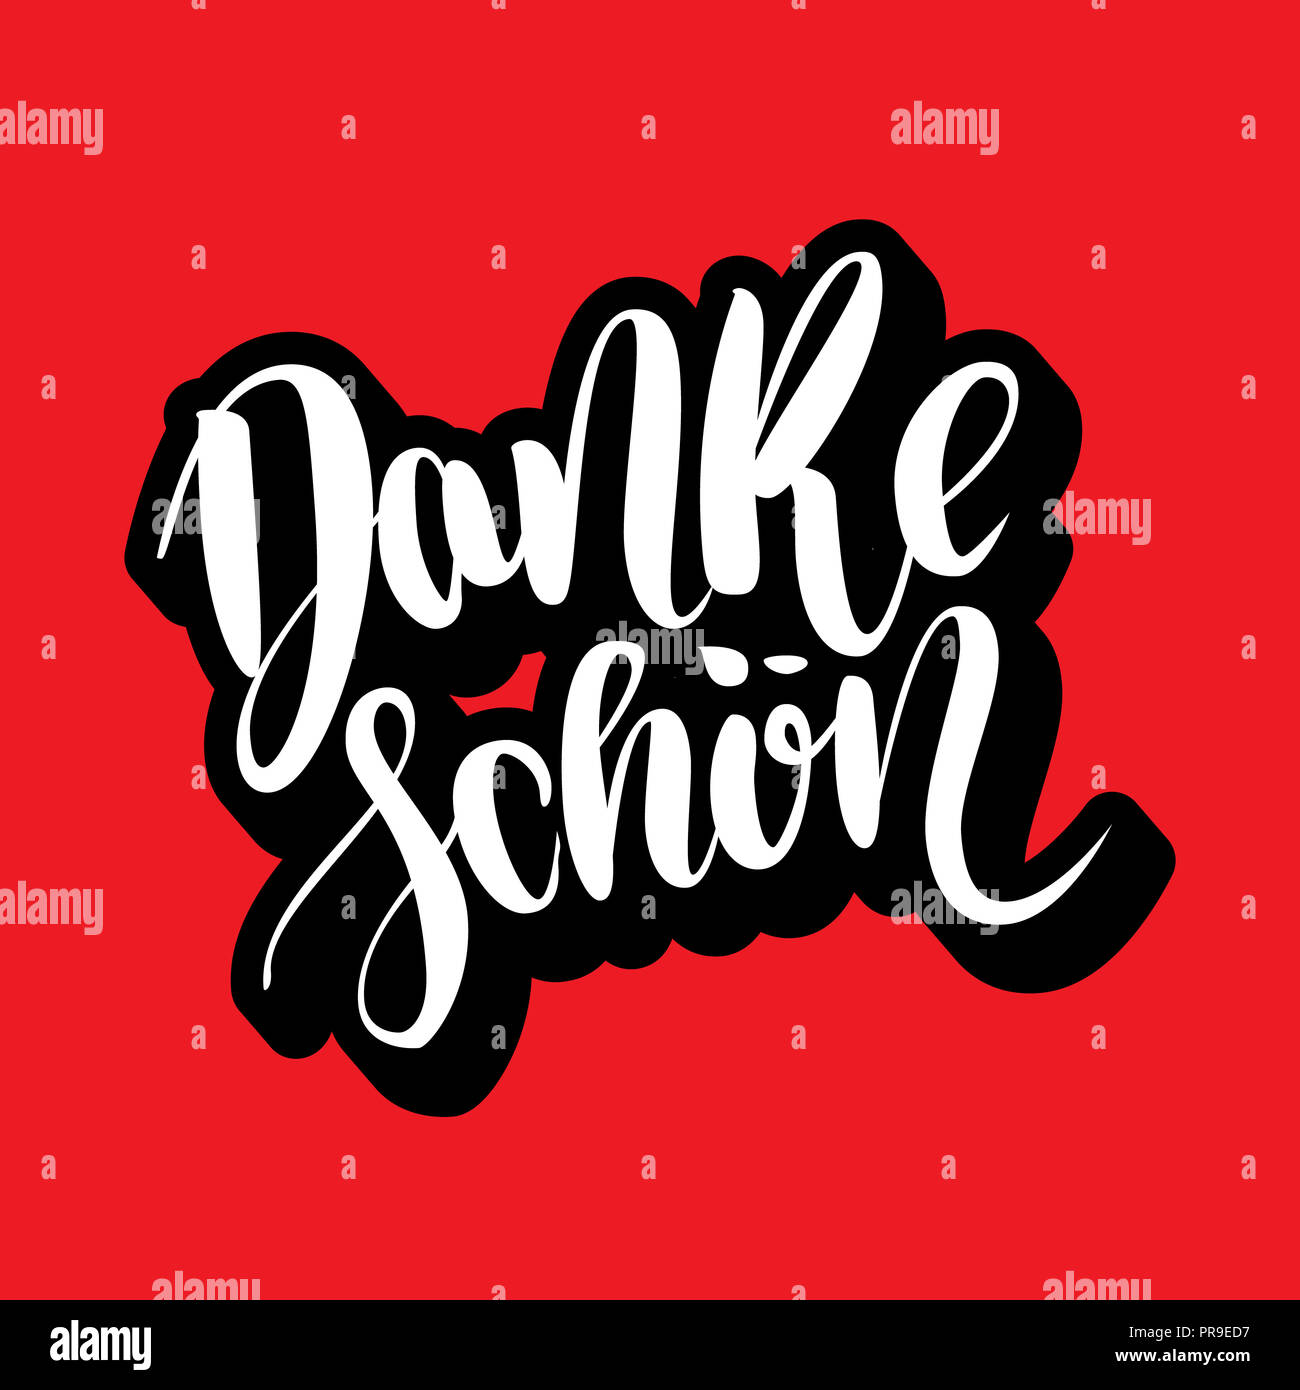 Danke schoen. Thank you in german.  hand drawn brush lettering on red background. Volume 3d letters Stock Photo